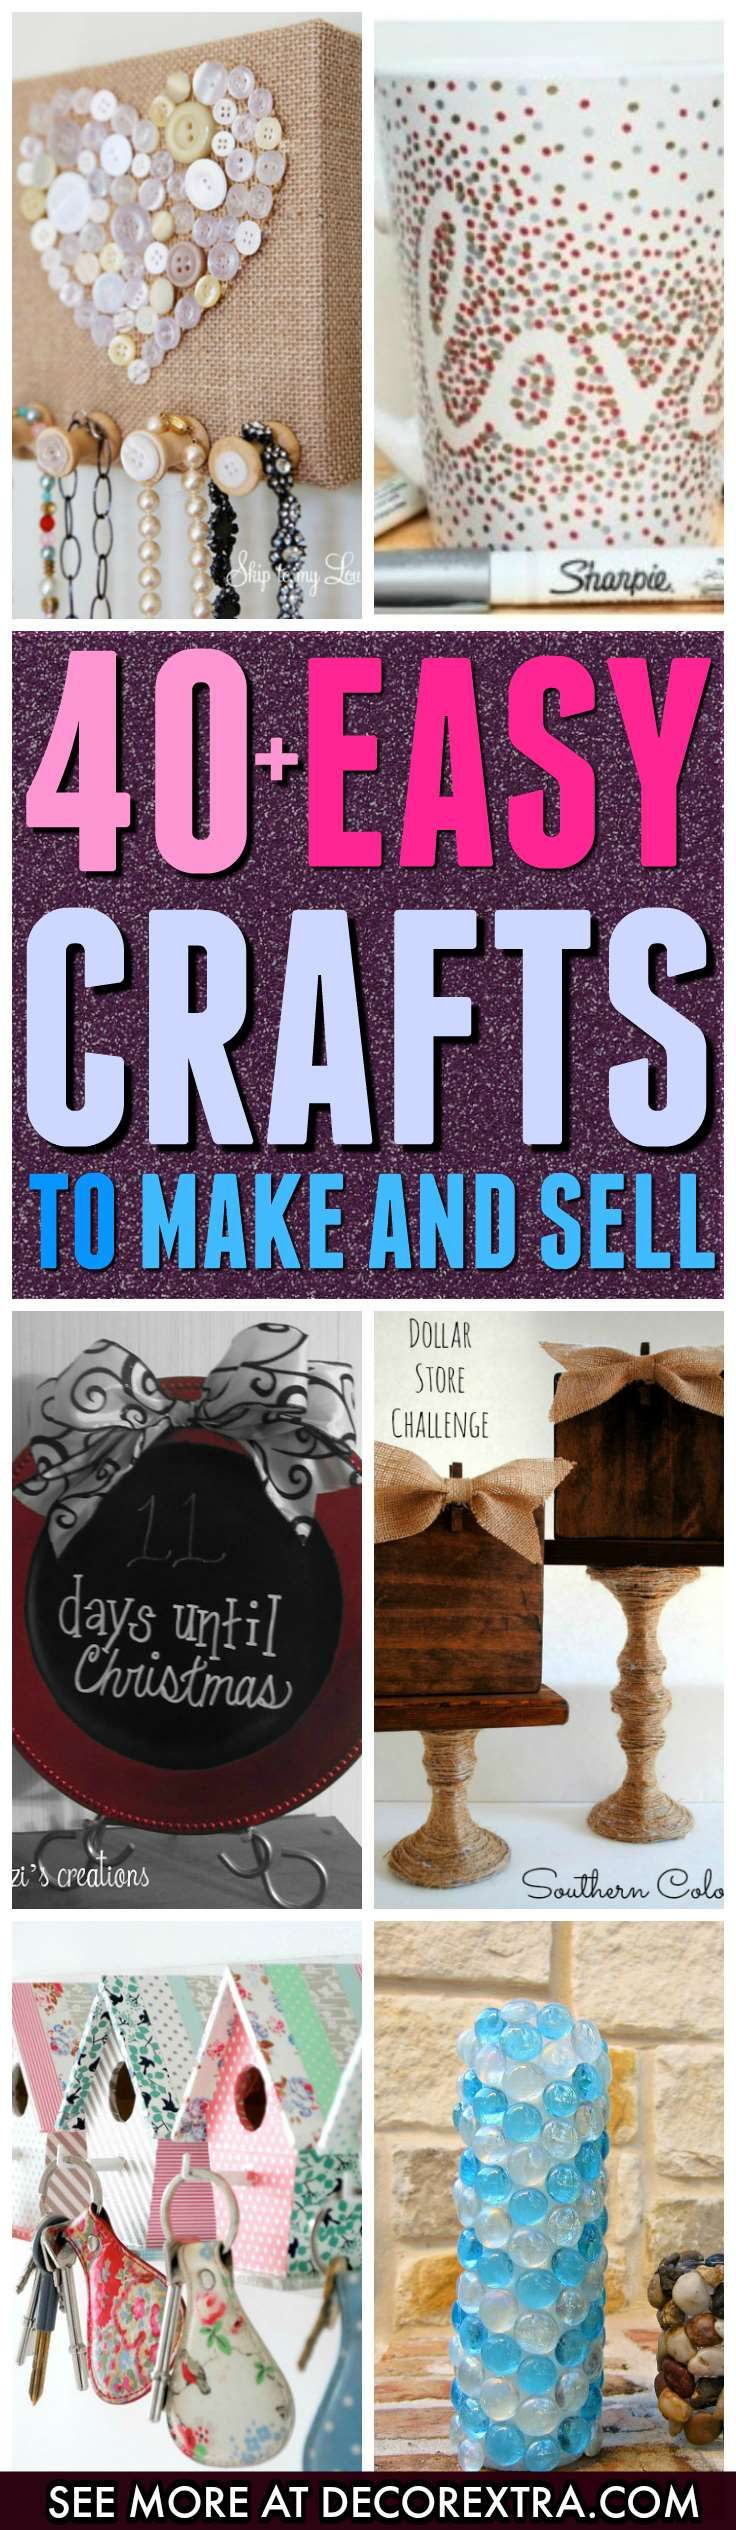 Crafts to Make and Sell.  You can make lots of different type of things with cheap items and you can get started selling your crafts on Etsy or other stores, so in this article we present you one